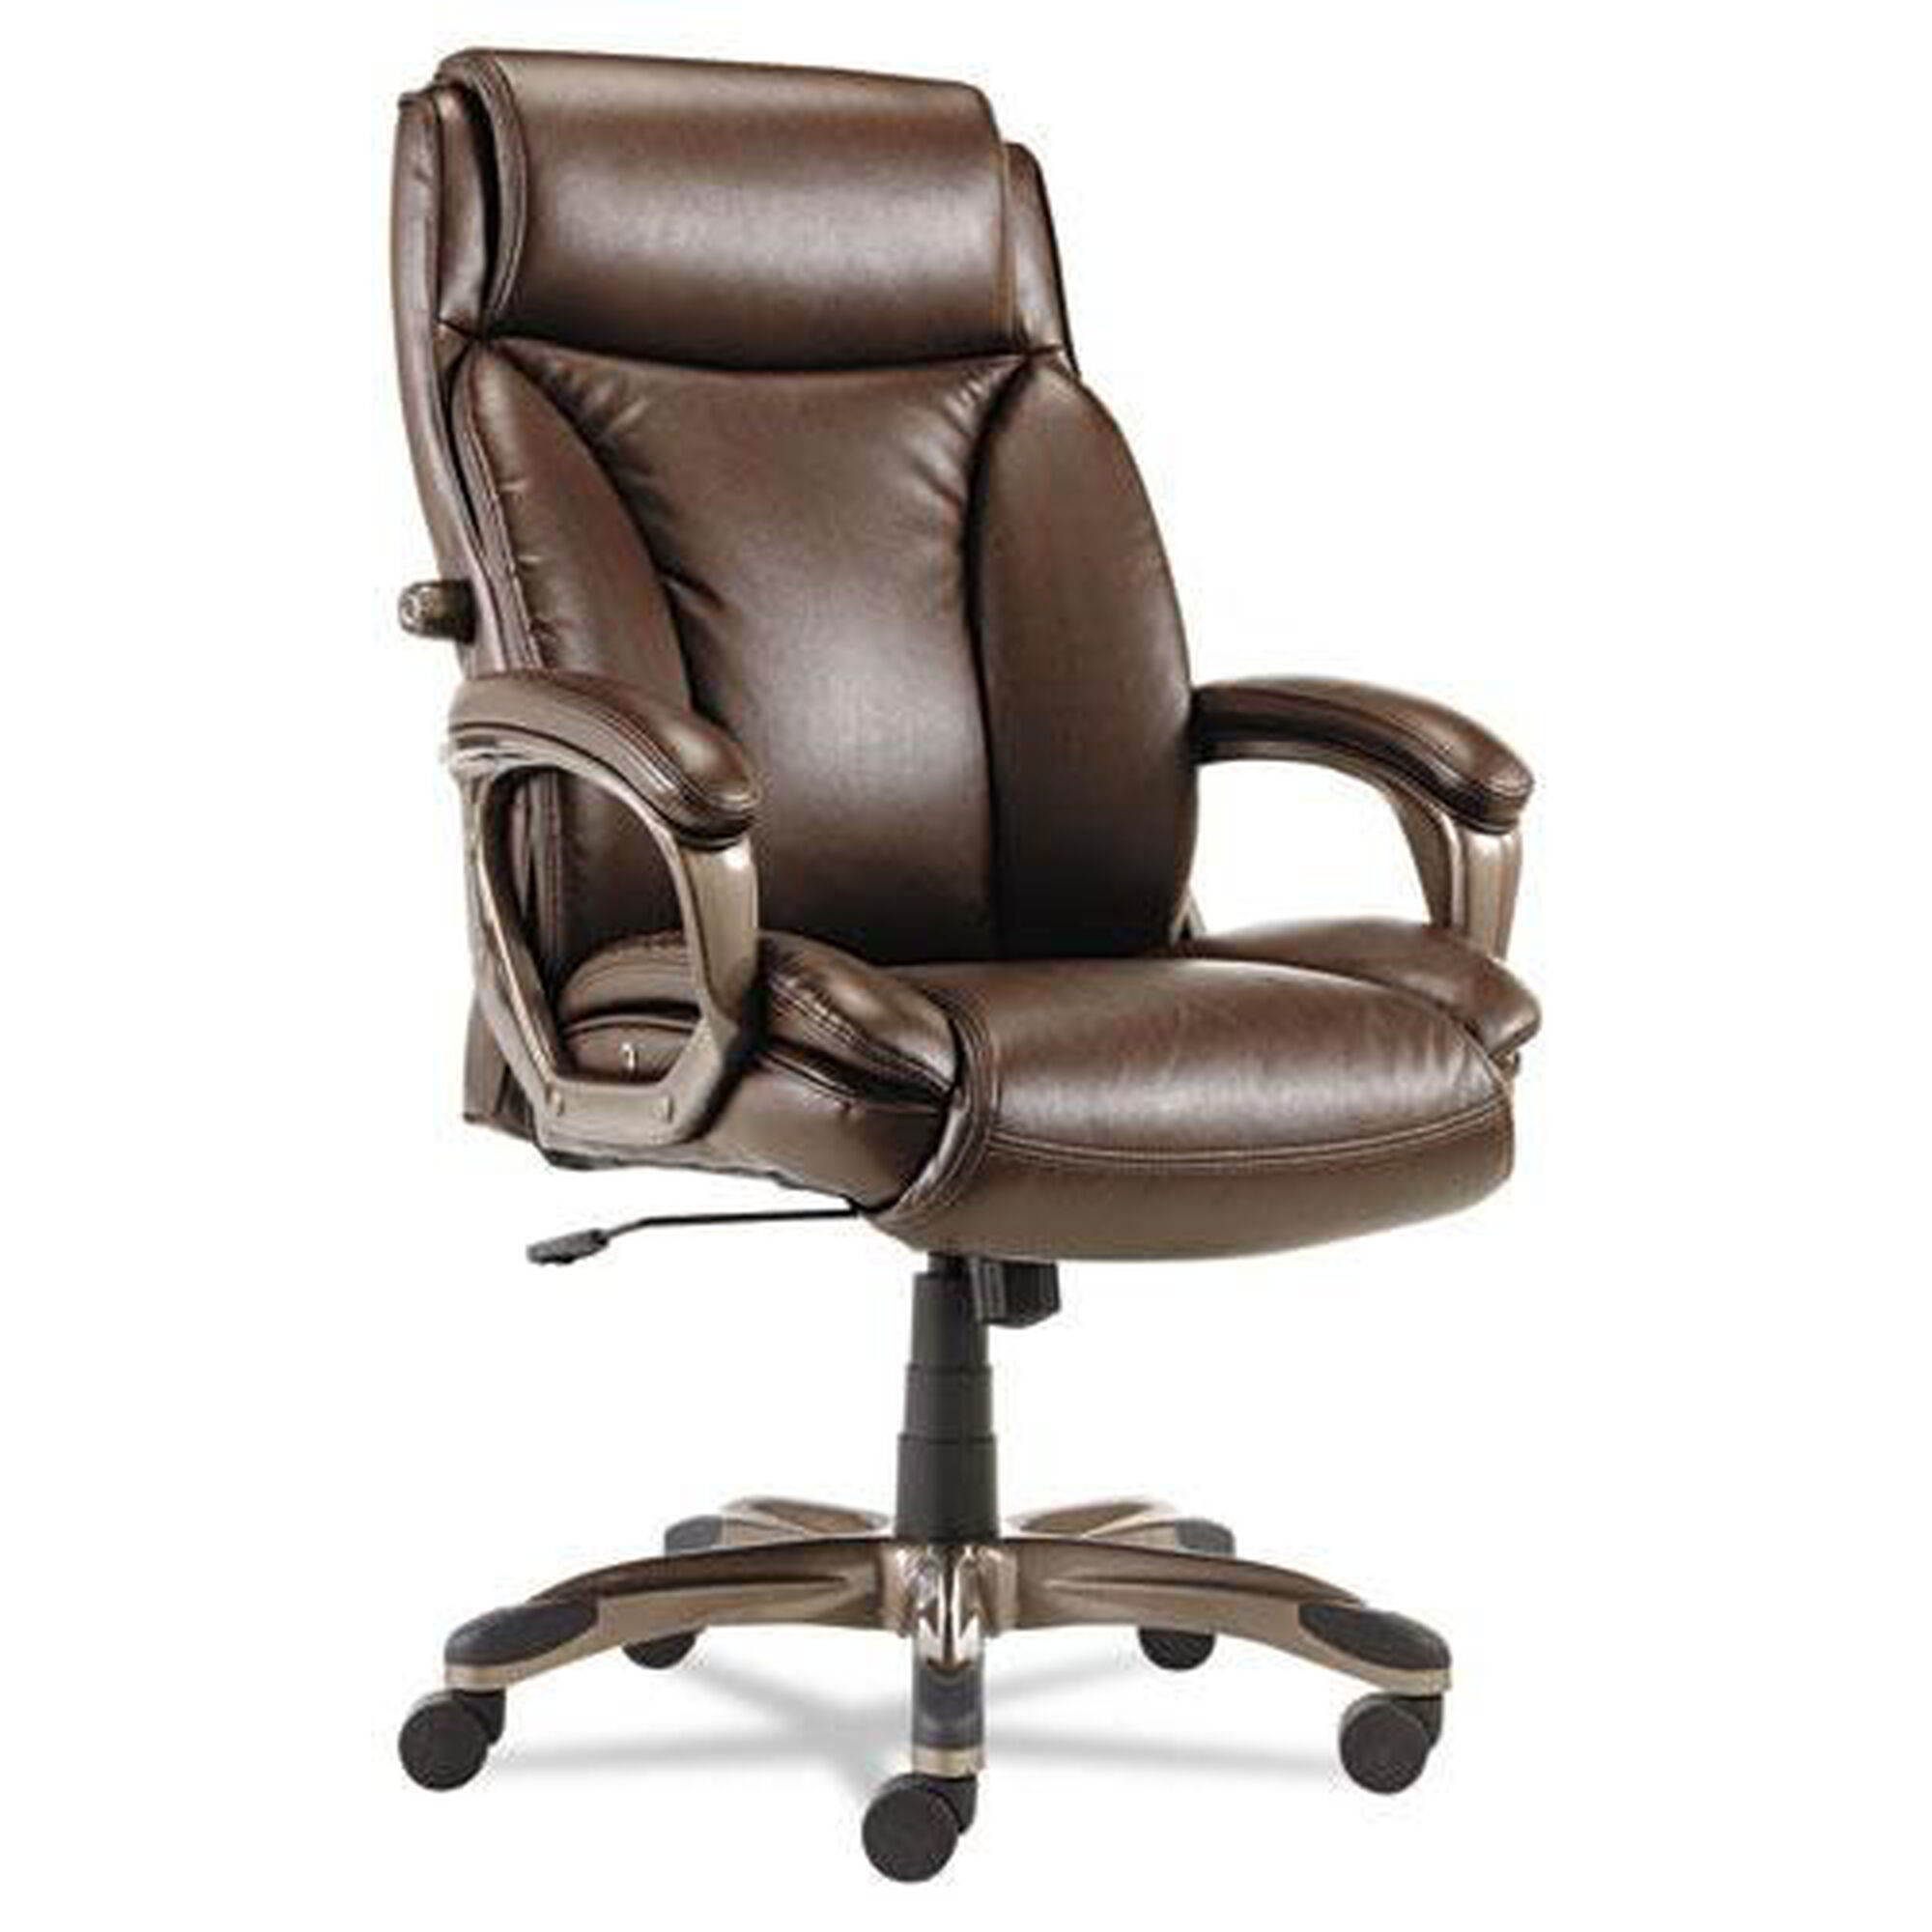 Executive Leather Chair Brown Alevn4159 Bizchair Com